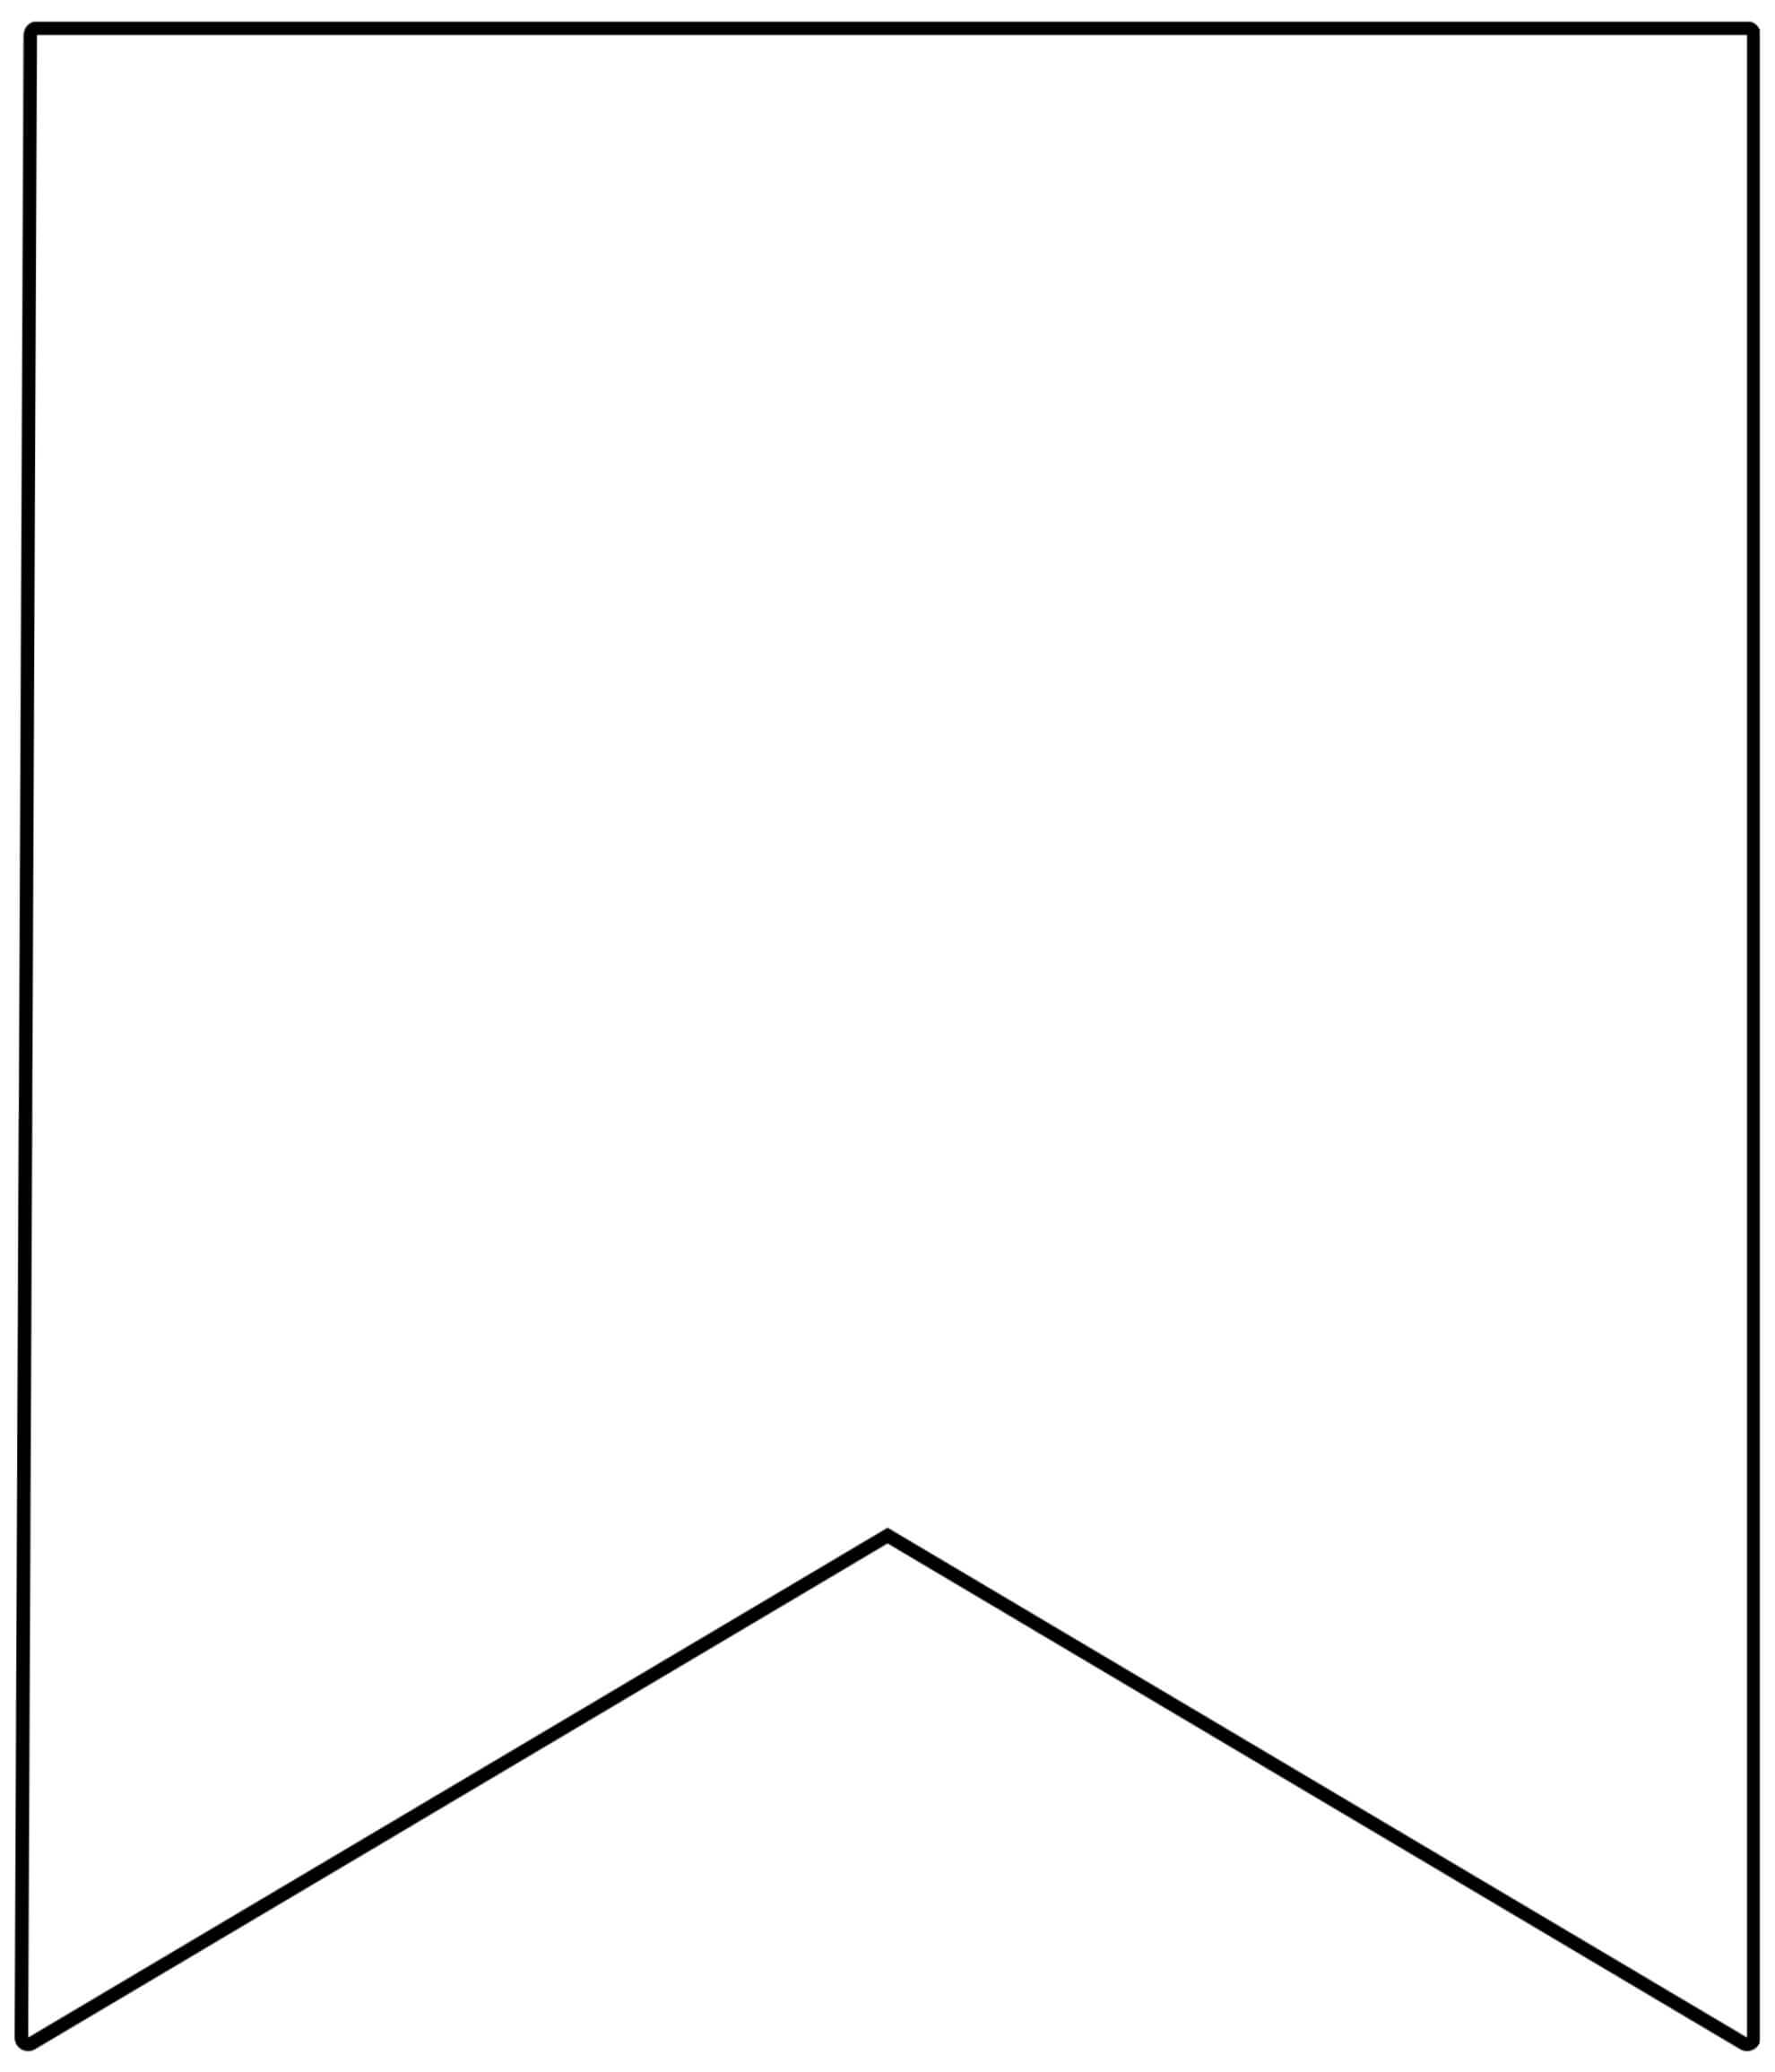 Free Printable Banner Templates {Blank Banners} - Paper Regarding Homemade Banner Template